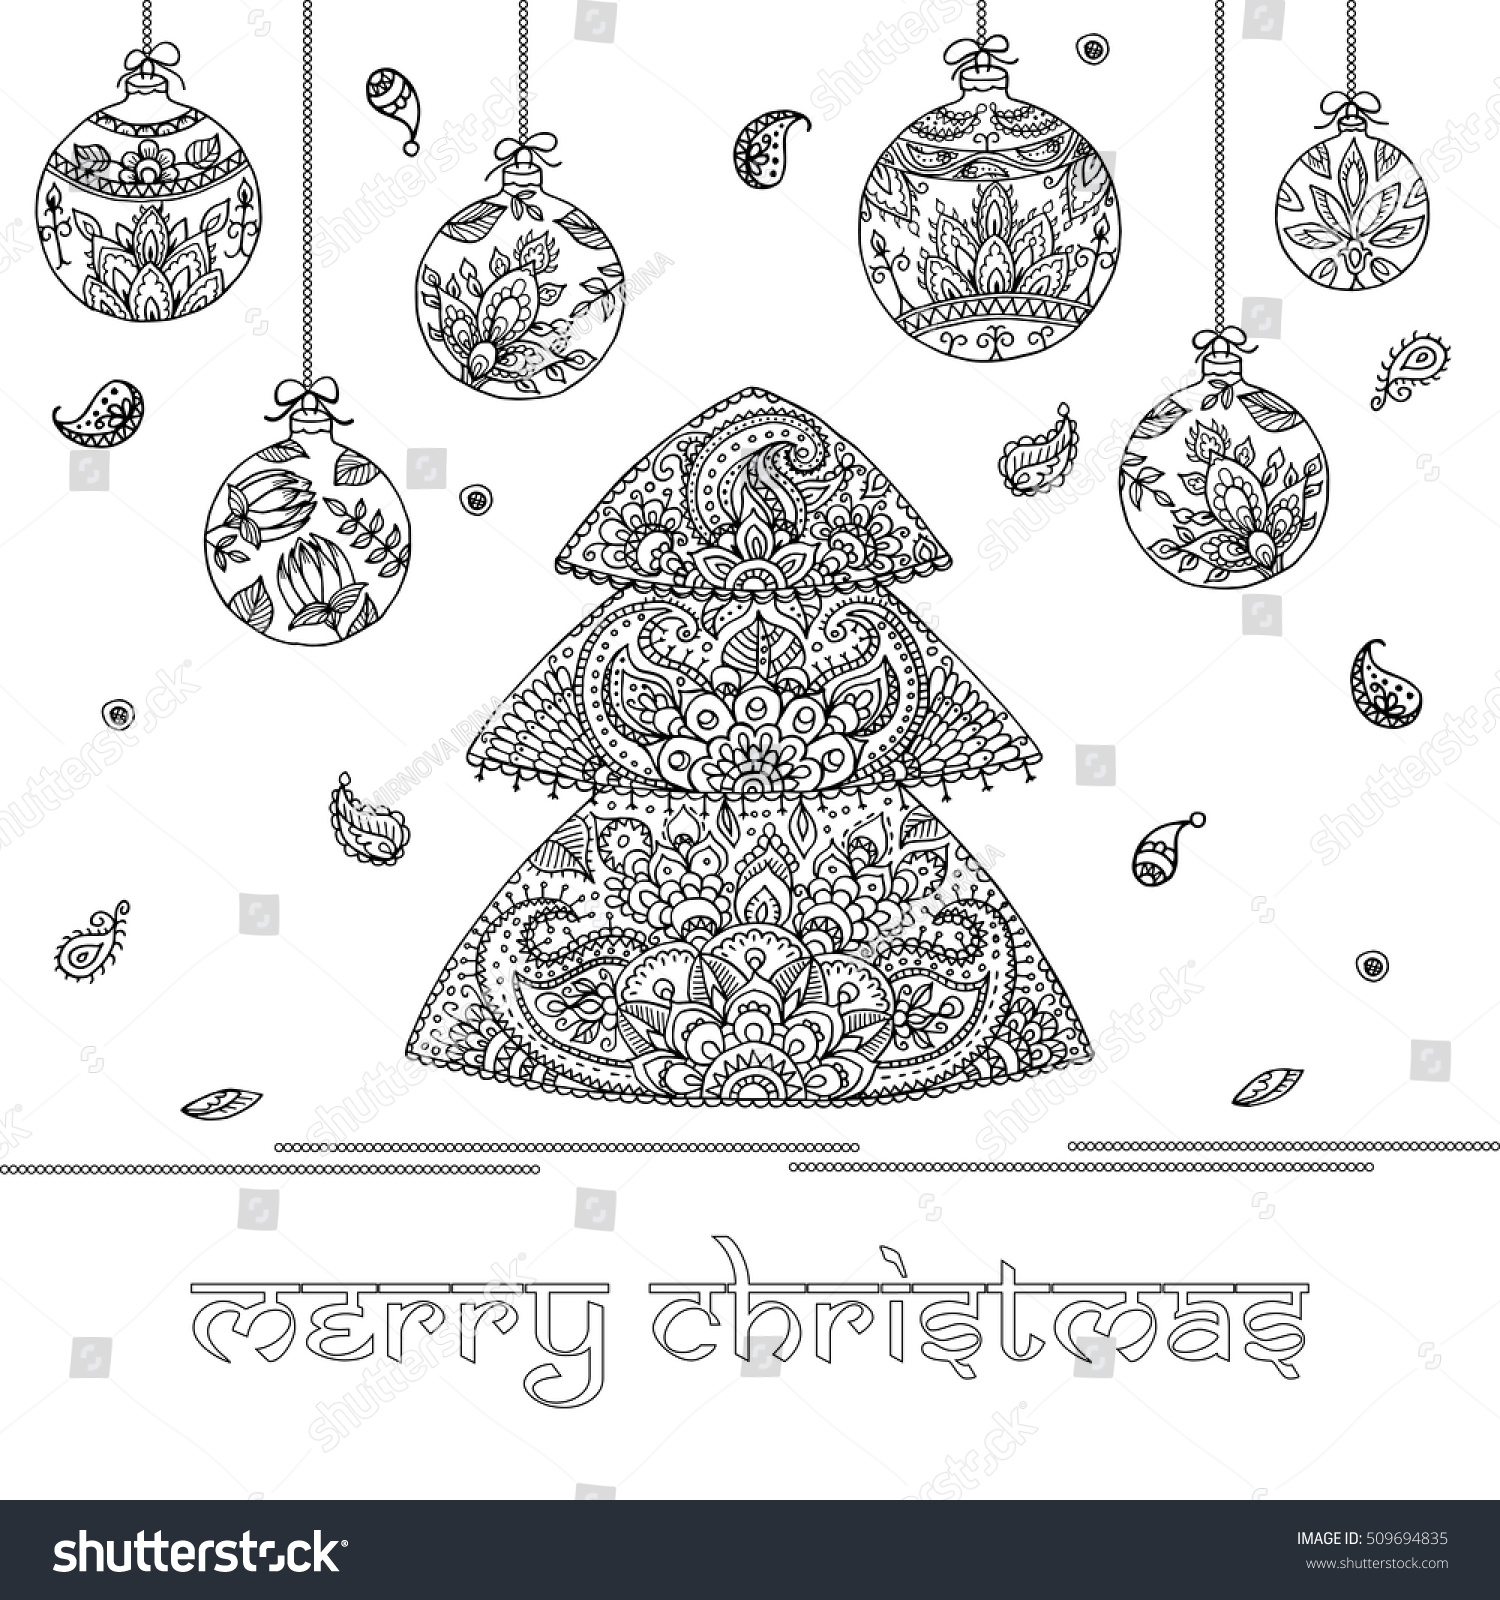 Christmas Tree Decorations Indian Floral Paisley Stock Vector ...